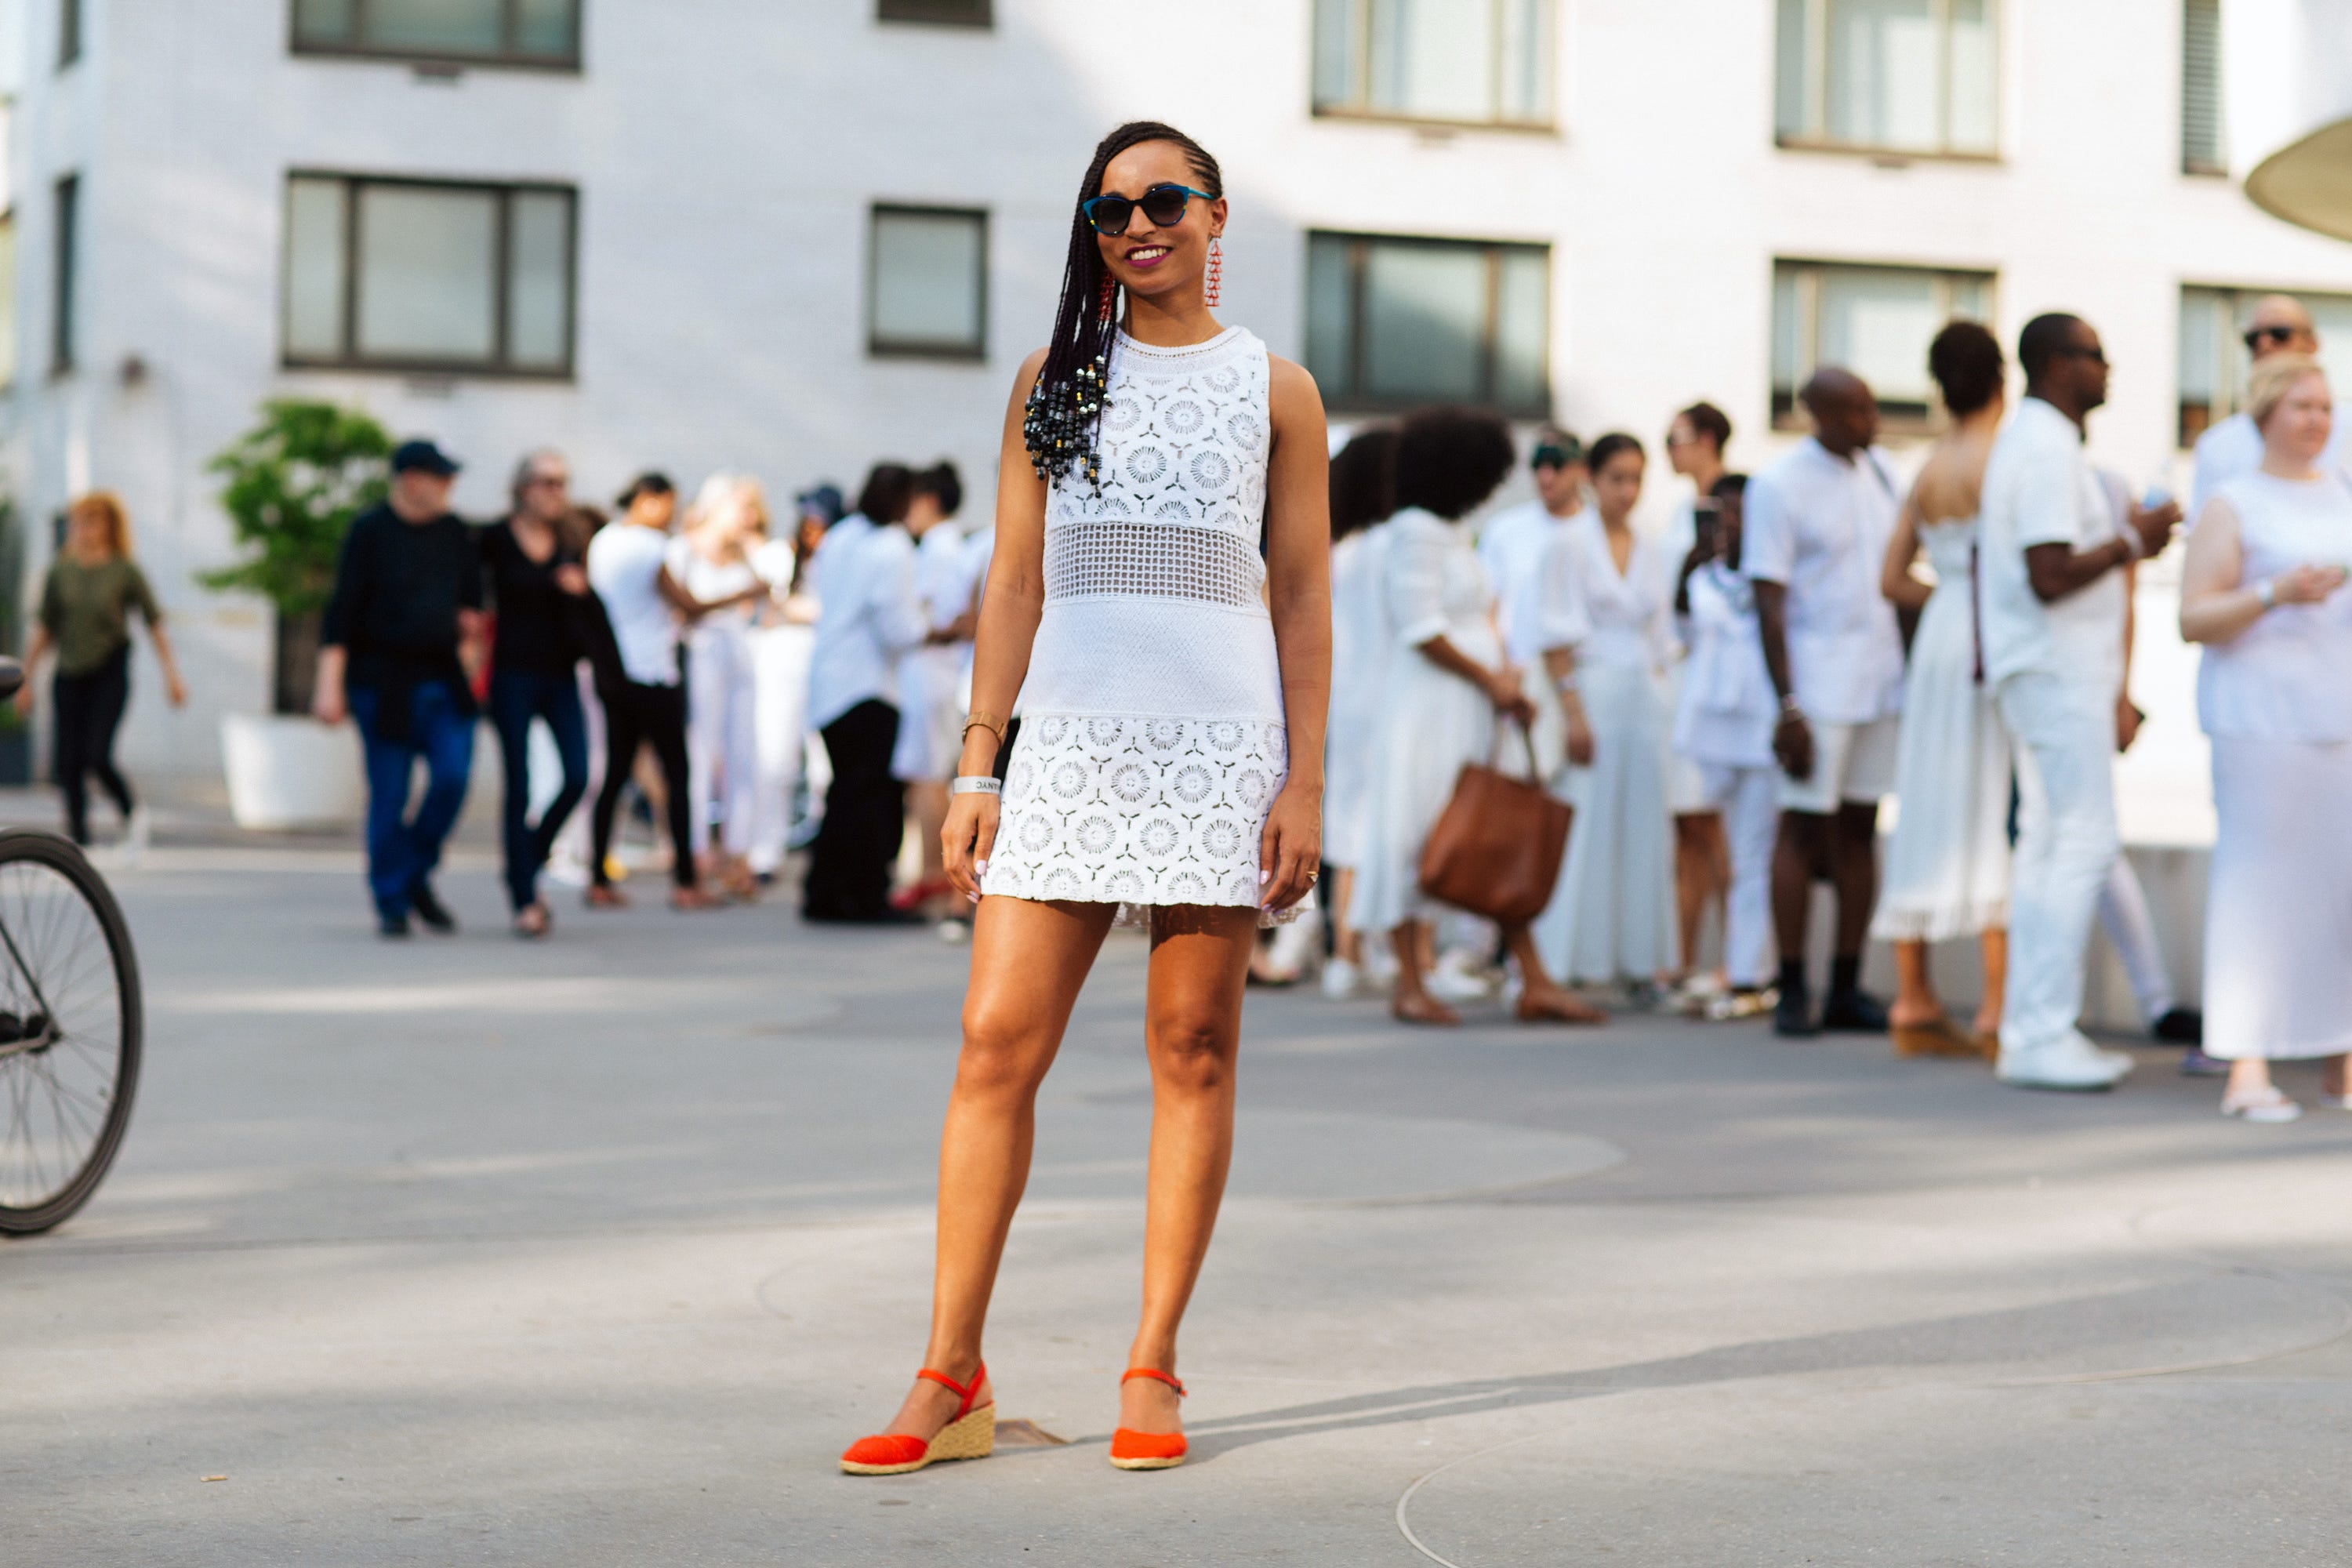 97c0ffa0363 ... You When Solange Knowles Asks You To Stick To An All-White Dress Code